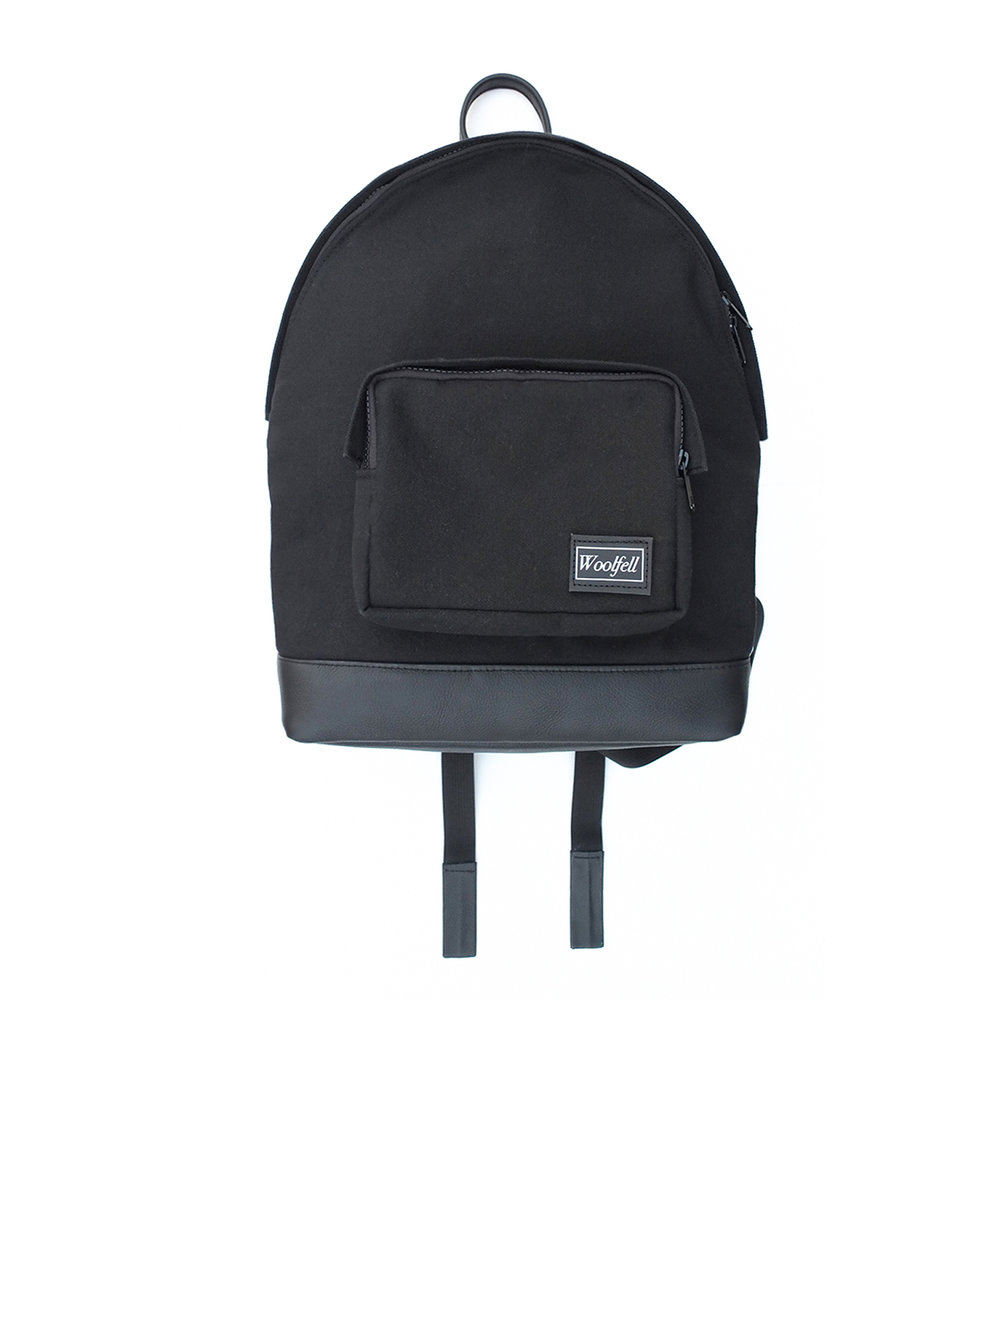 Classic backpack - more colors available200.00$